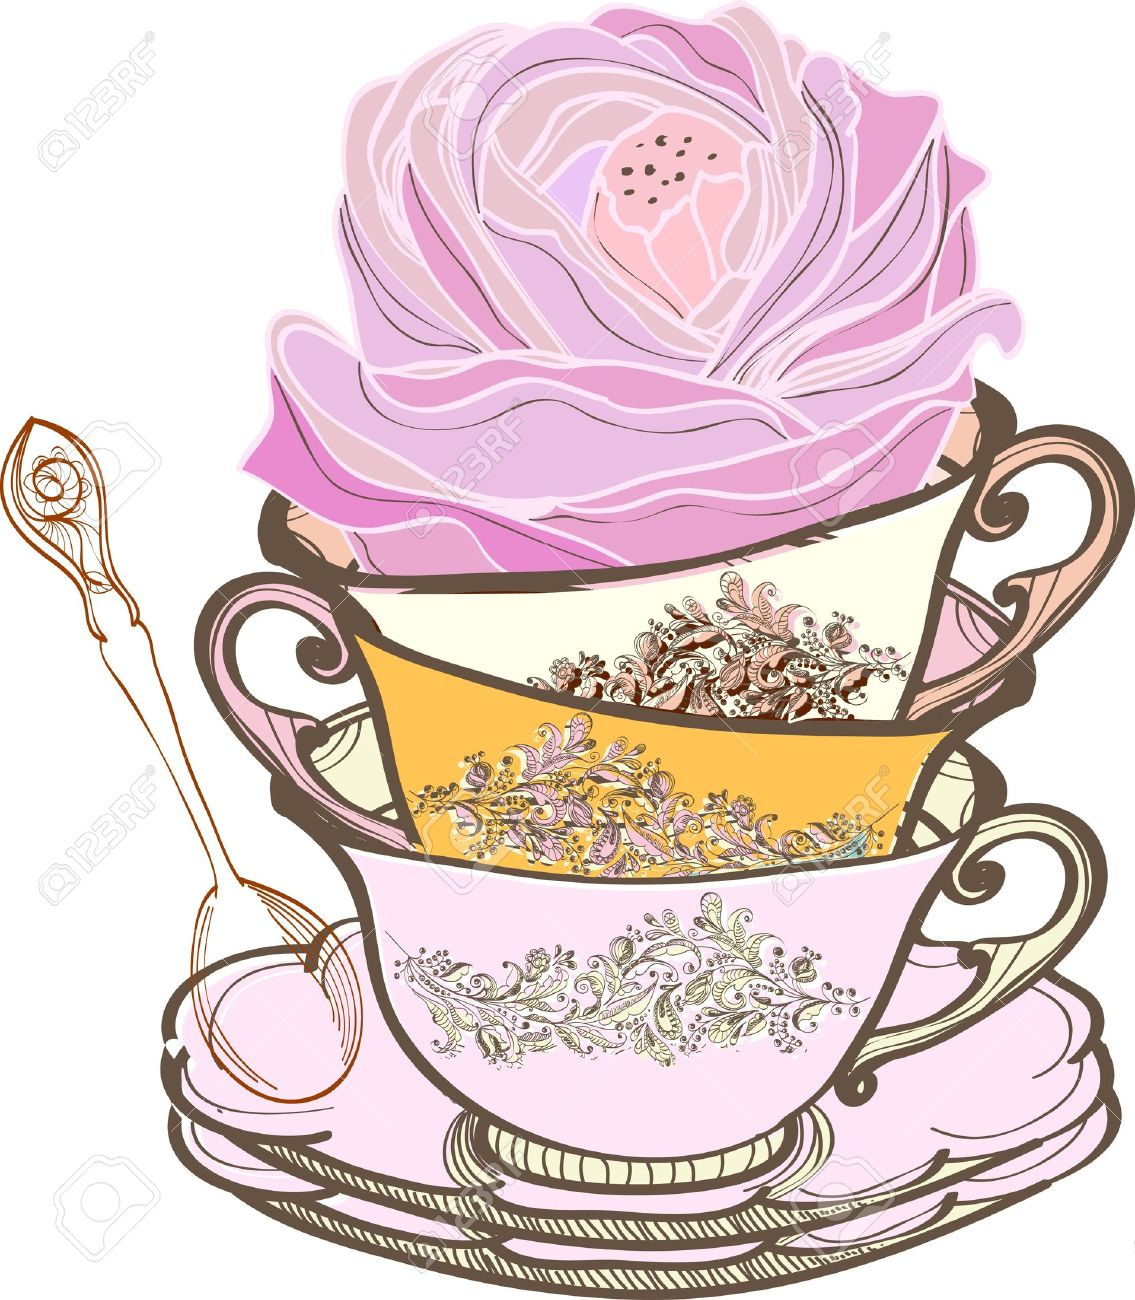 5,766 Afternoon Tea Stock Vector Illustration And Royalty Free.